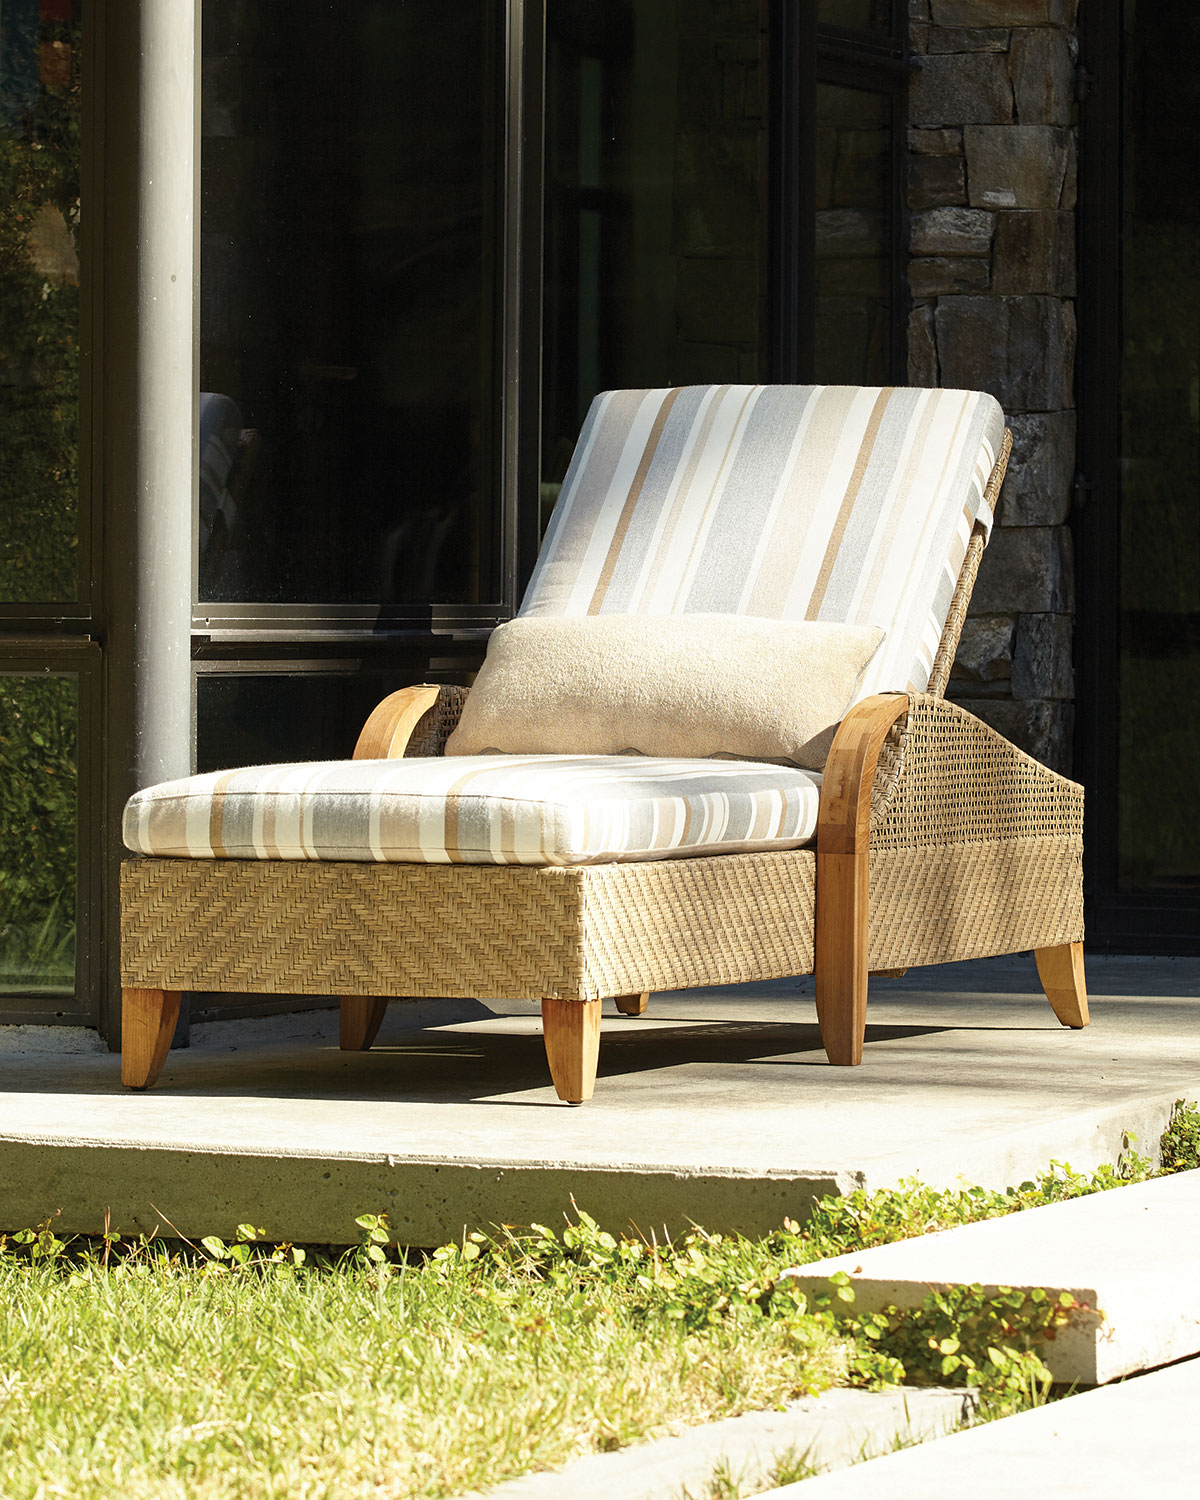 Edgewood Outdoor Chaise